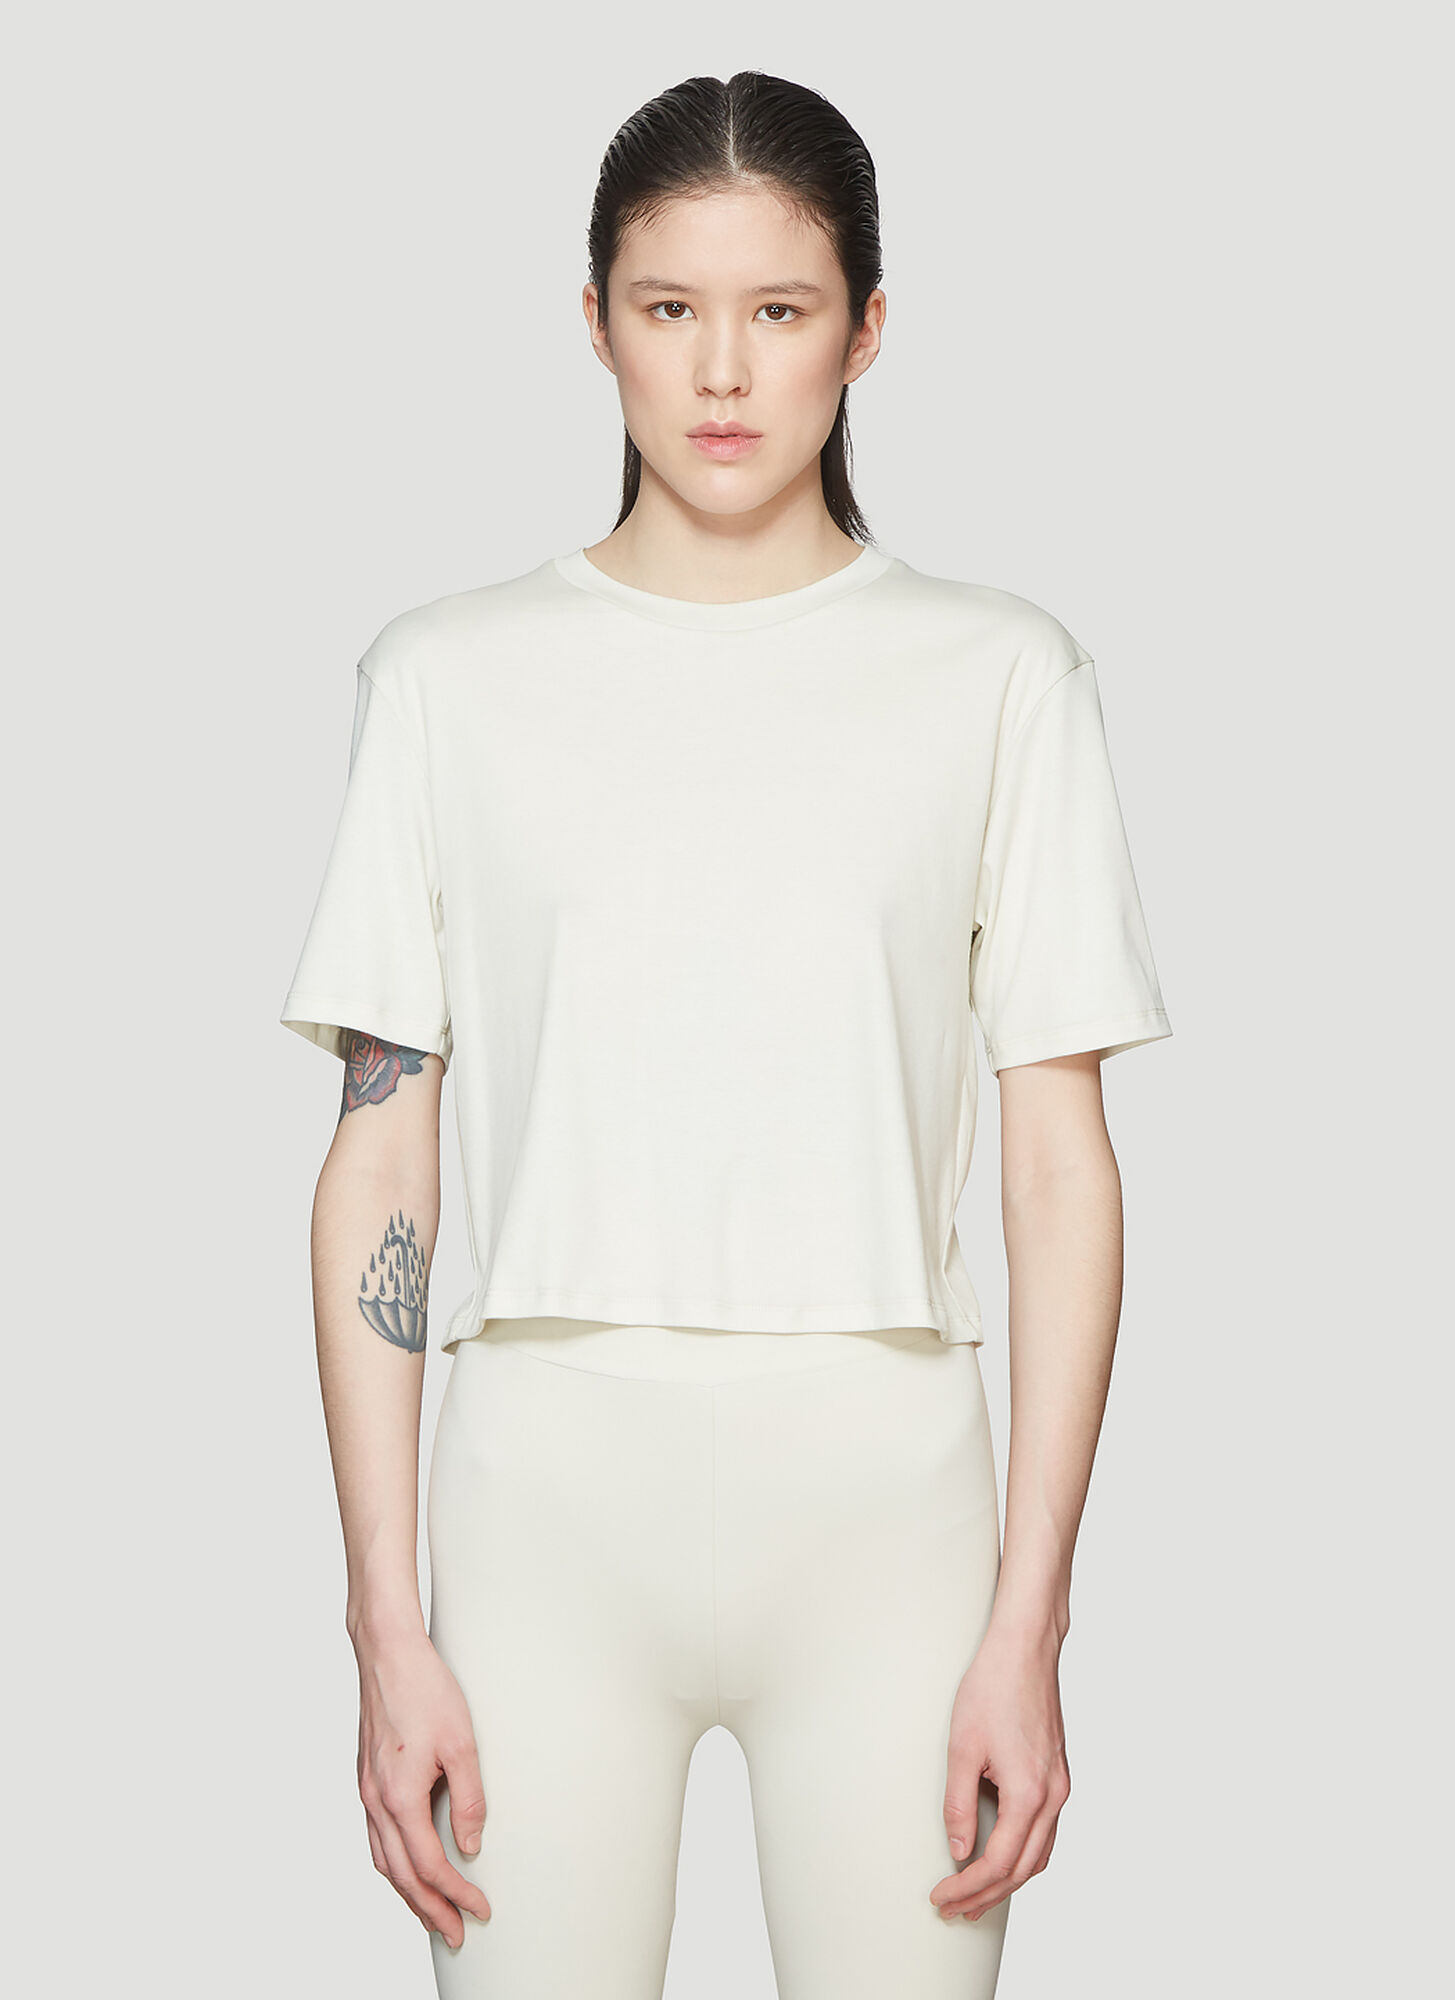 Roni Ilan Cropped T-Shirt in Beige